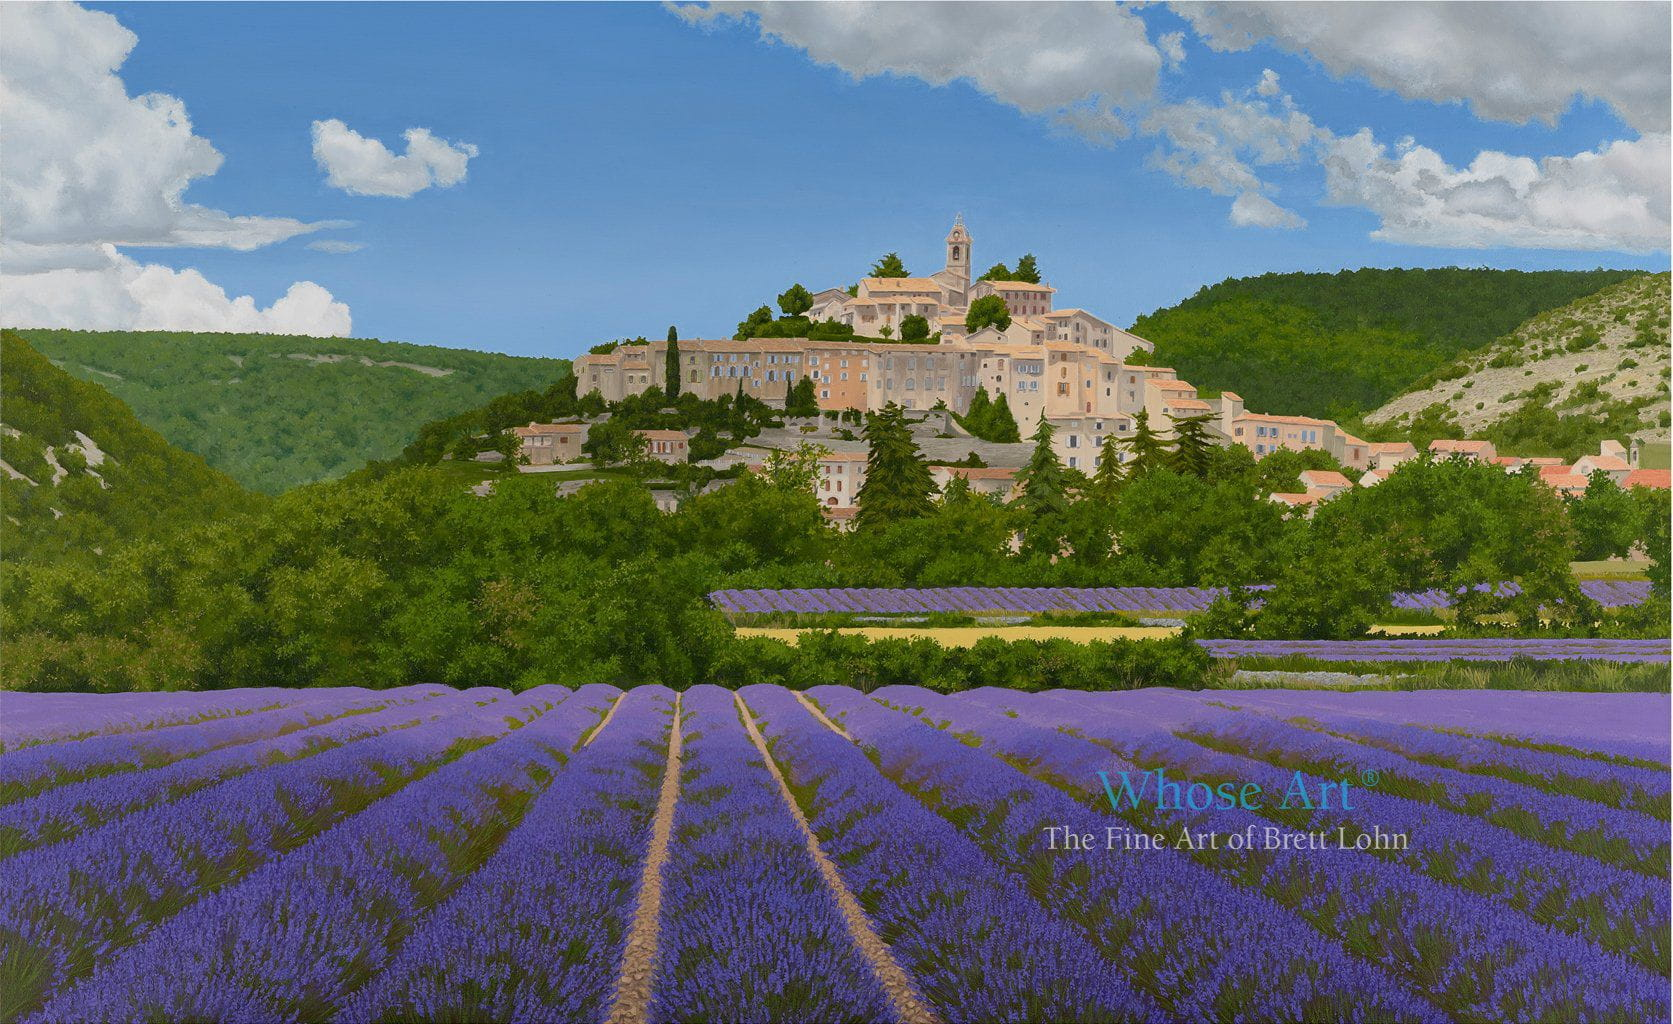 Wall art print of a hill village surrounded by lavender fields in Provence, France. This oil painting shows lavender in rows.